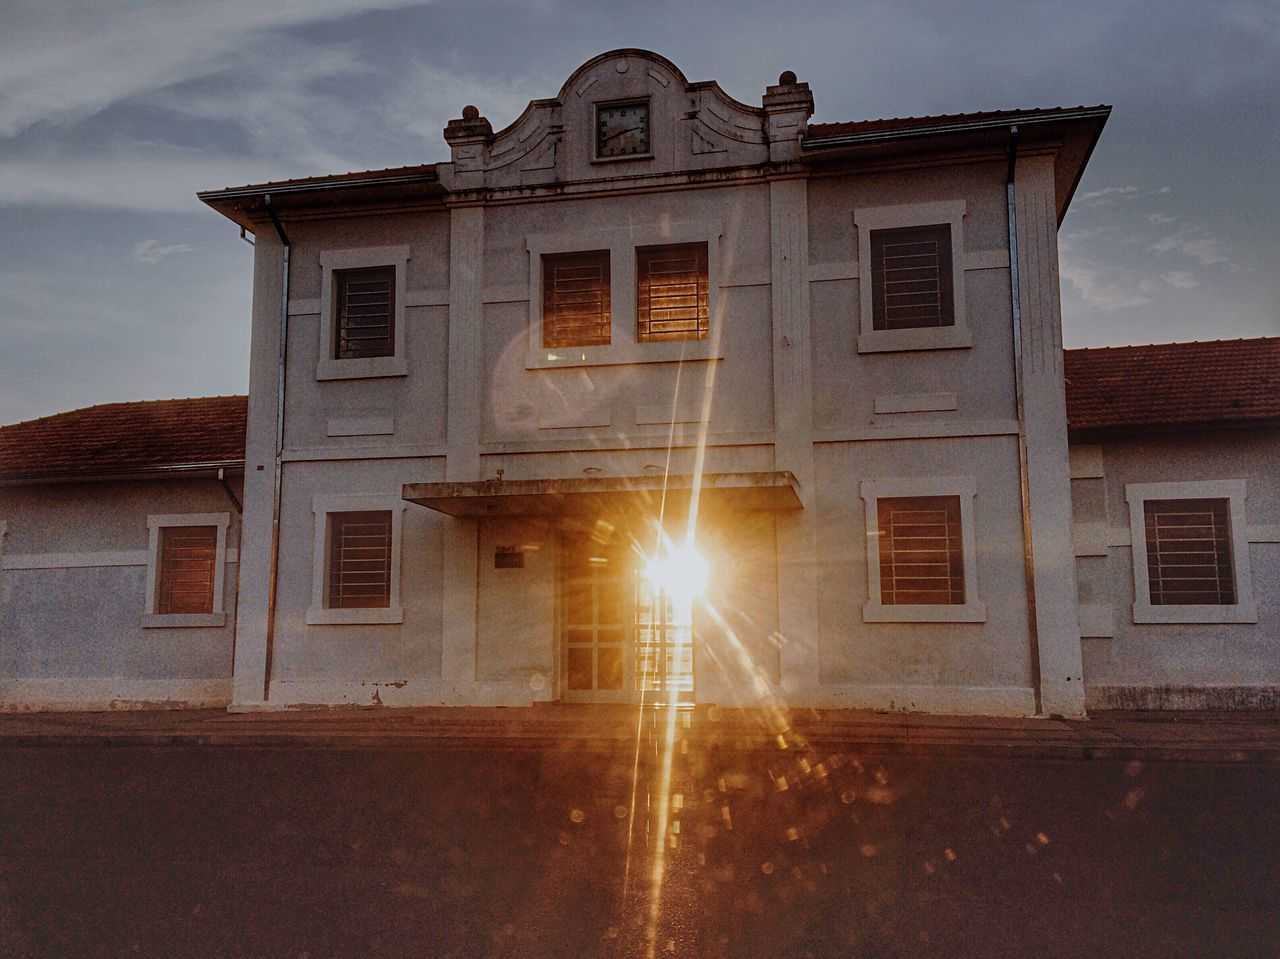 Old Railway Station Architecture Building Exterior Built Structure Sky Sunset Low Angle View No People Religion Illuminated Outdoors Sun Rail Transportation Old Buildings Railway Sunshine Sunshine Railway Window Former Antique Sunset Buildings Sunset_collection Abstract Effects Sunset #sun #clouds #skylovers #sky #nature #beautifulinnature #naturalbeauty #photography #landscape